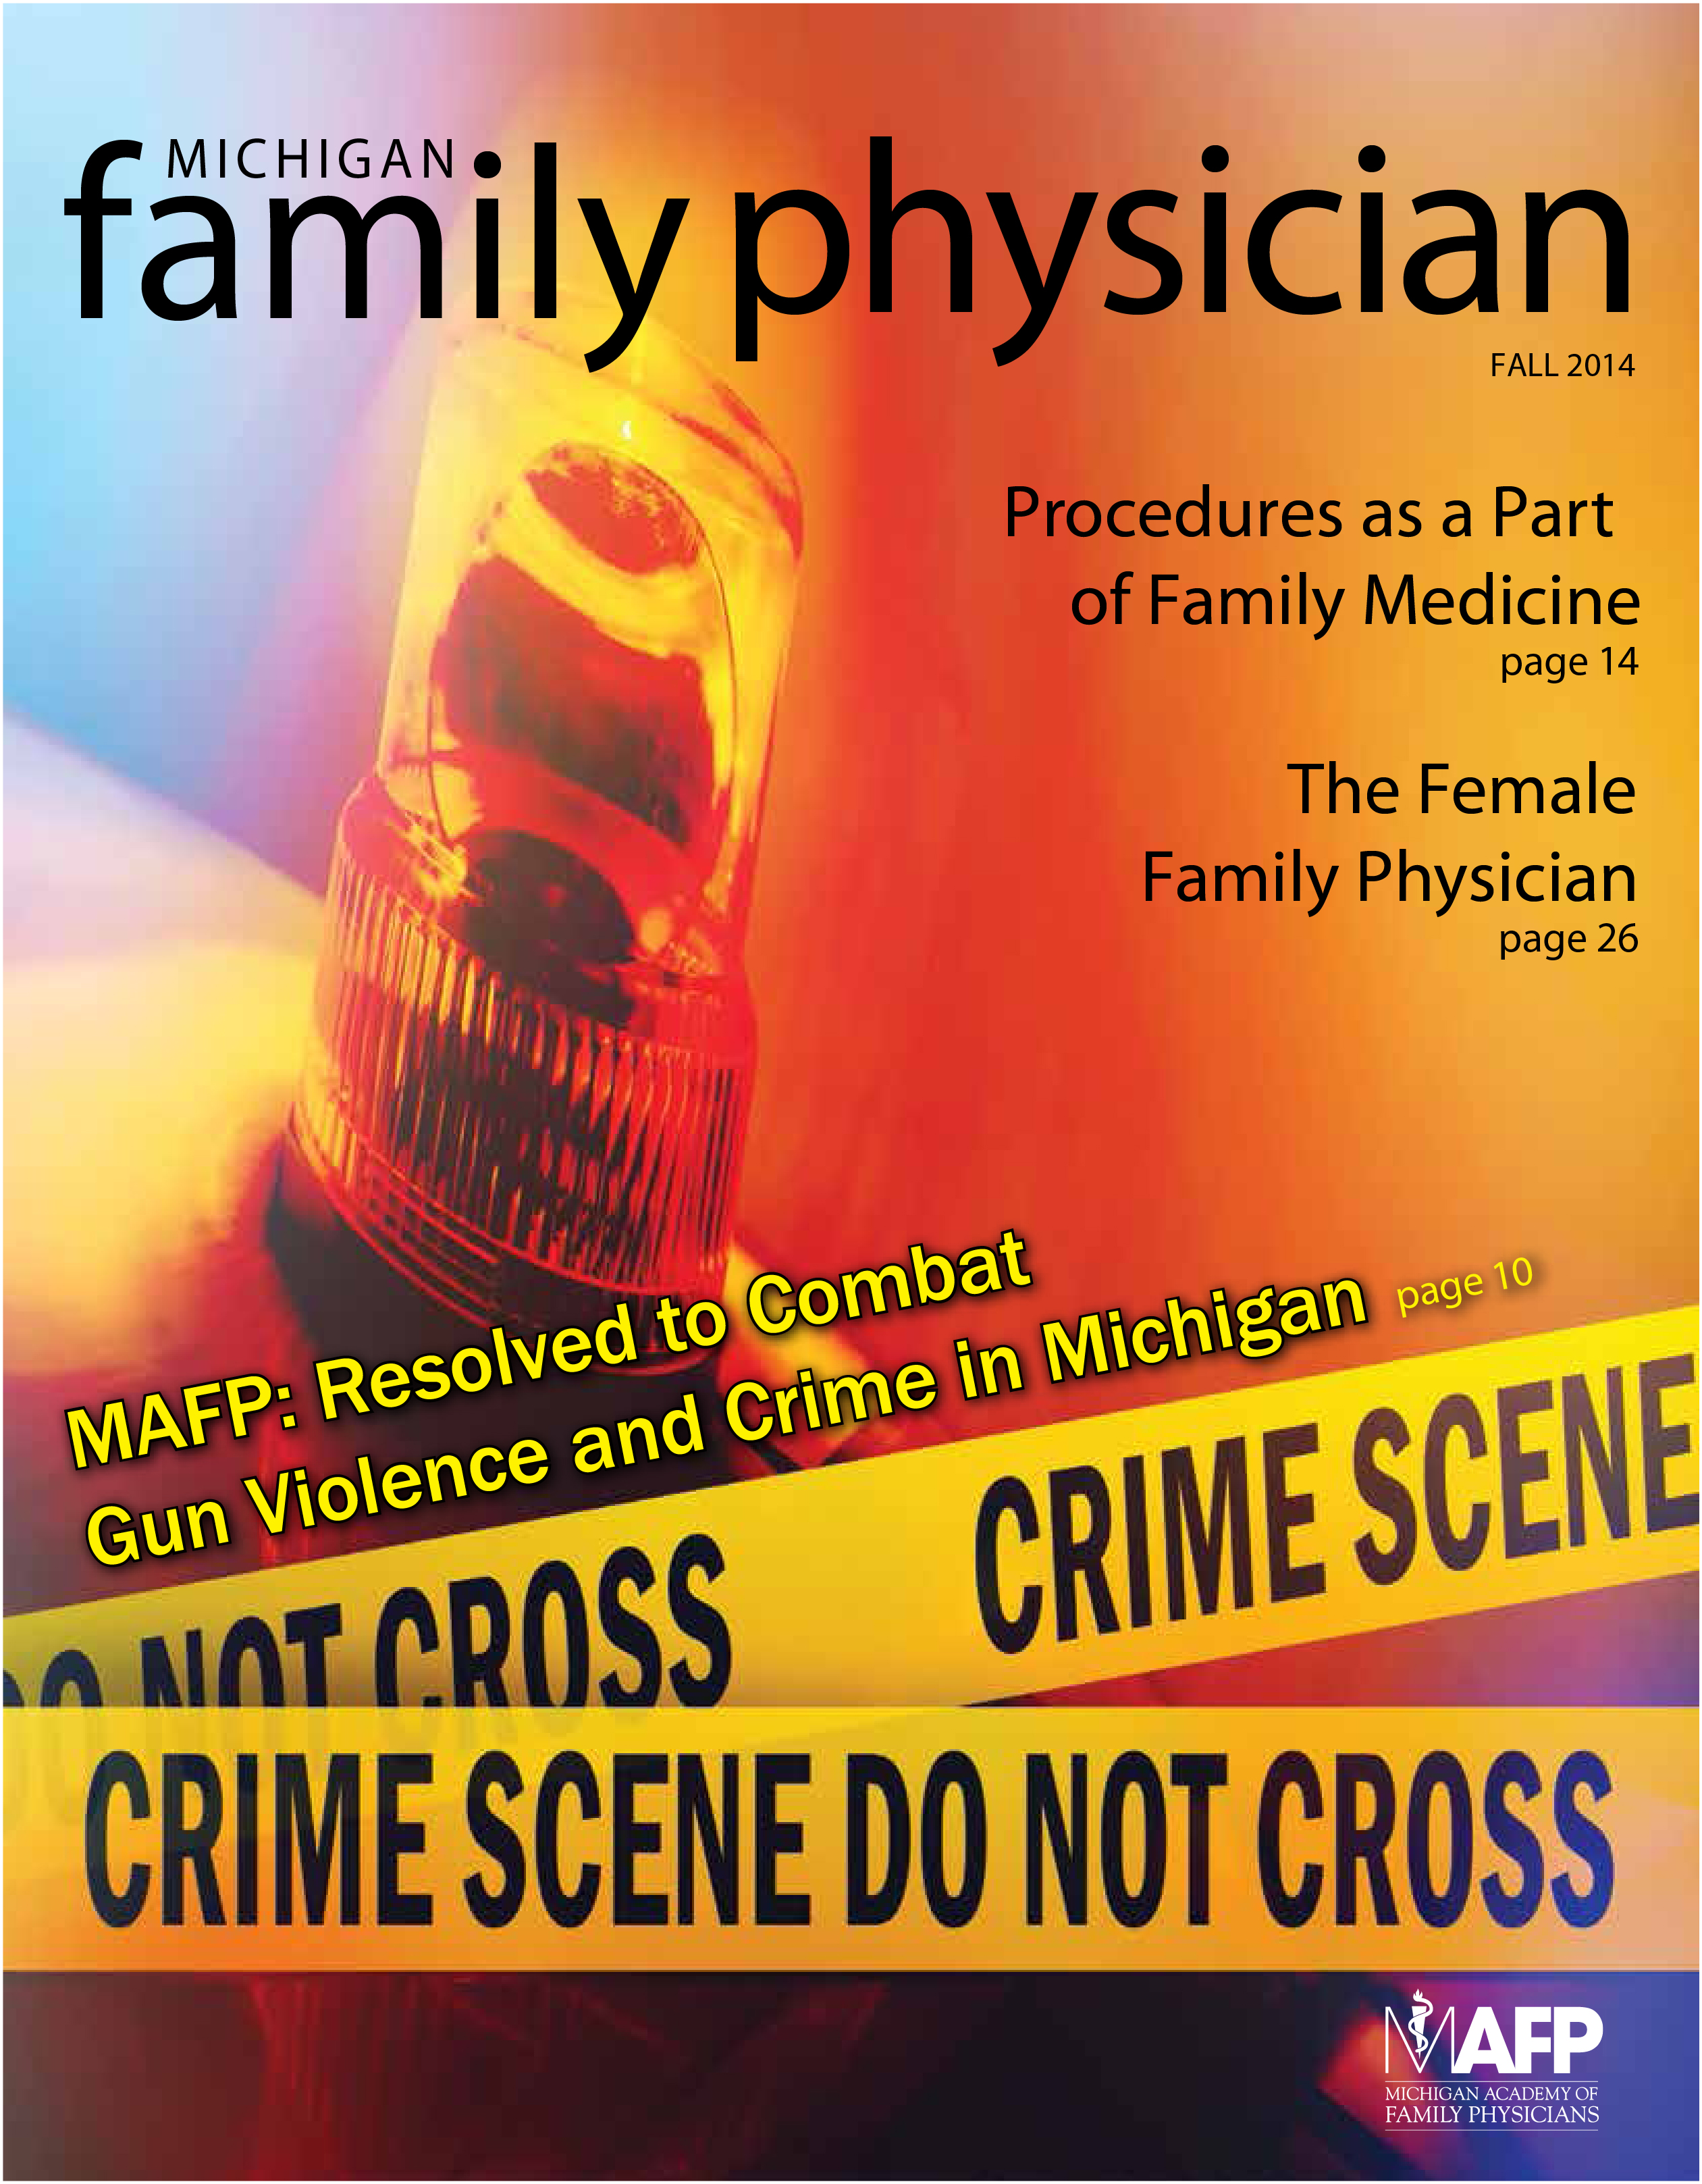 2014-10 Fall Michigan Family Physician (1)